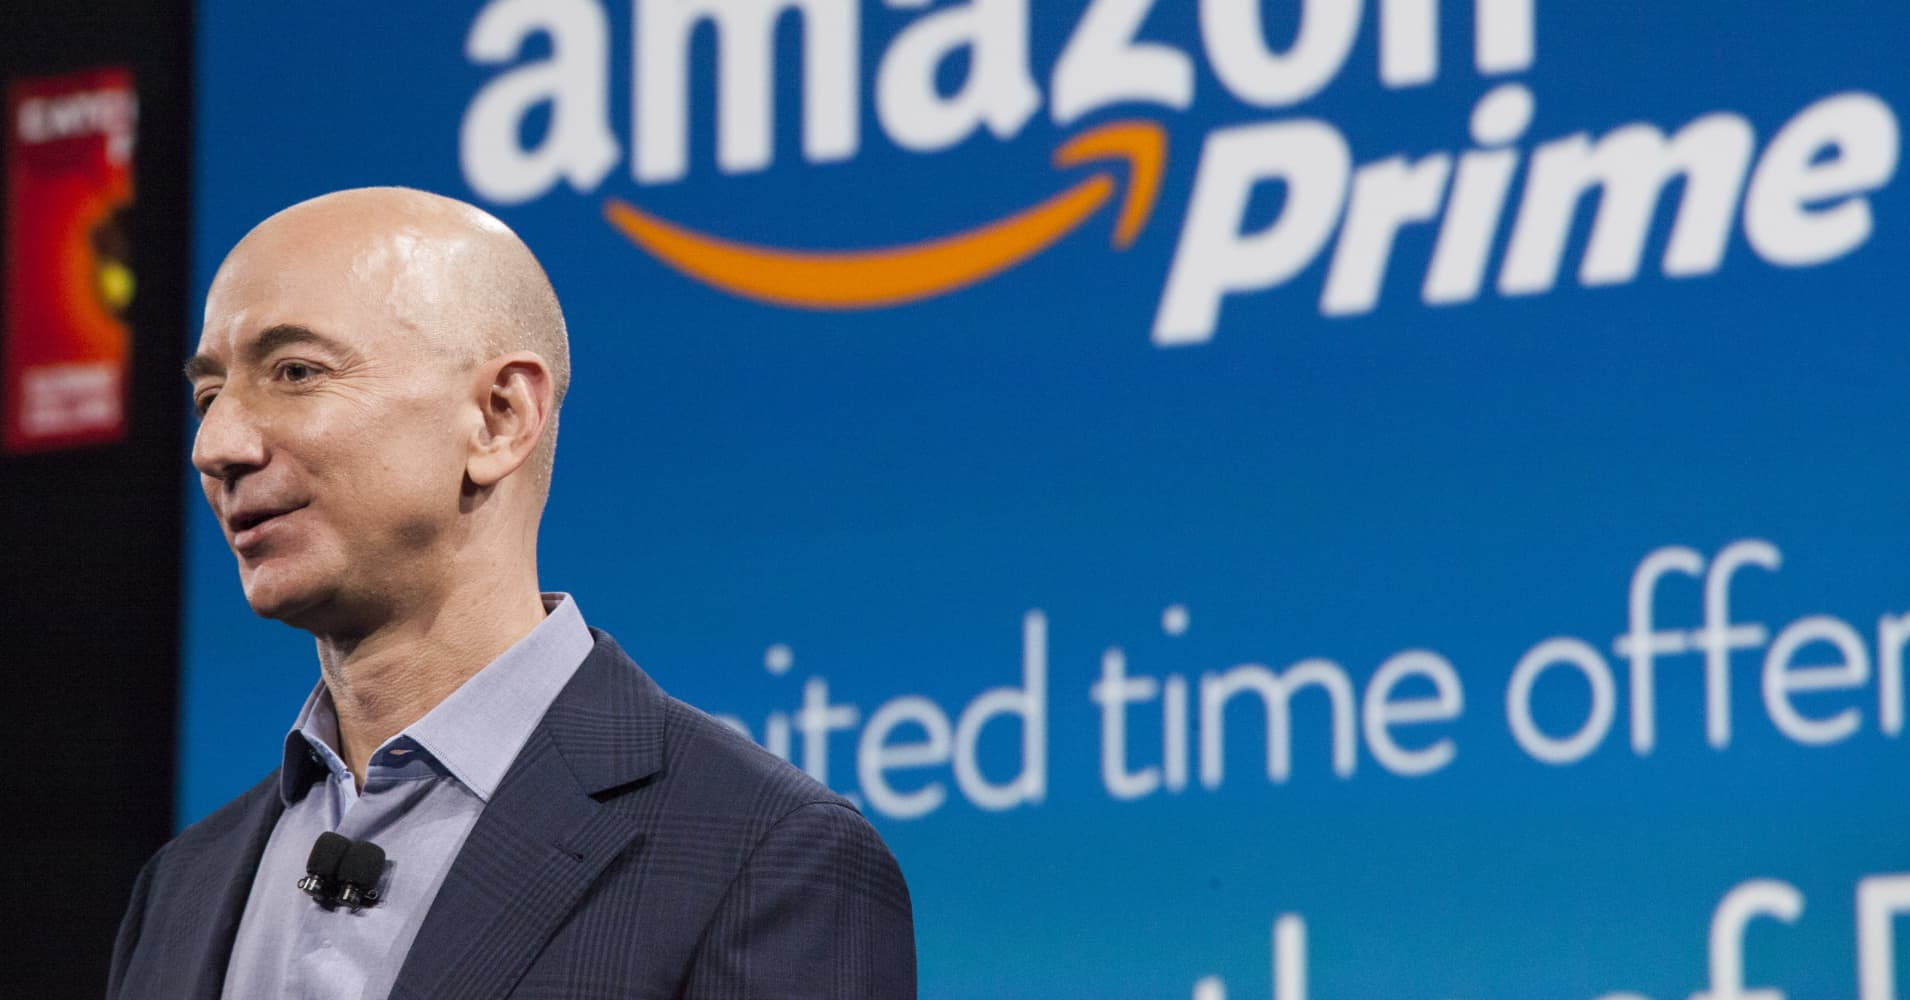 Jeff Bezos is worth $100 billion